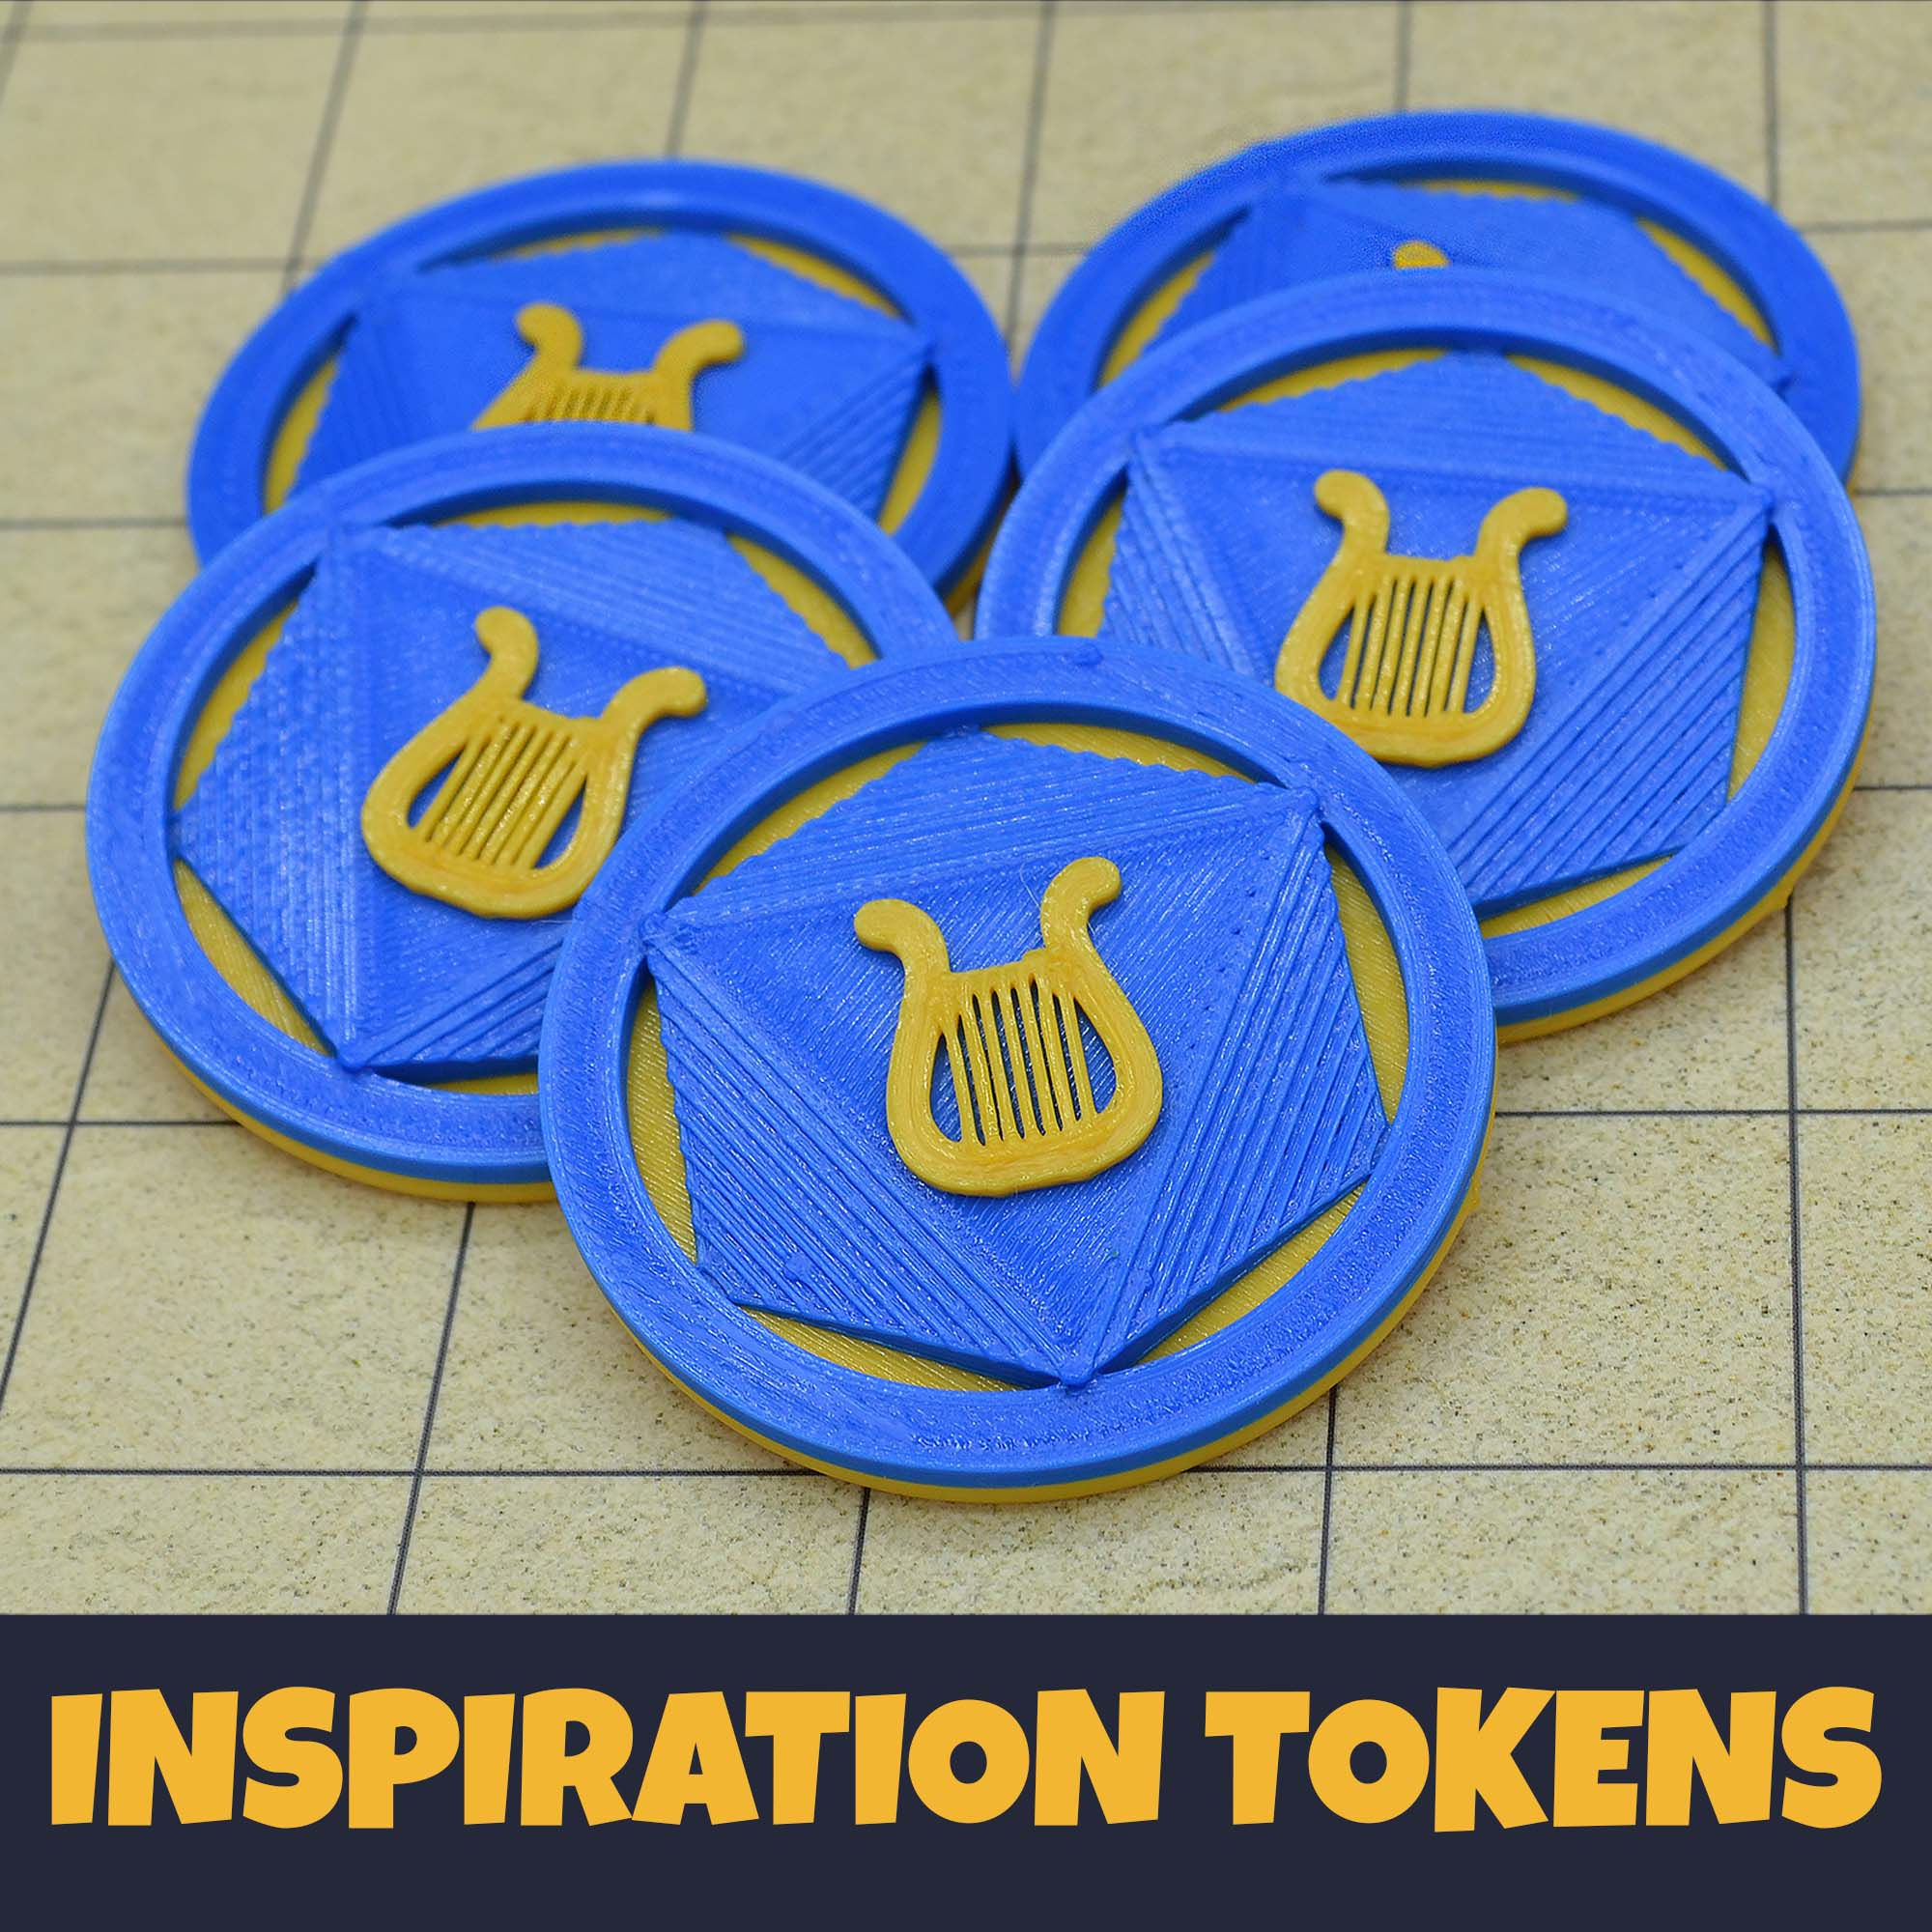 D&D Inspiration Tokens